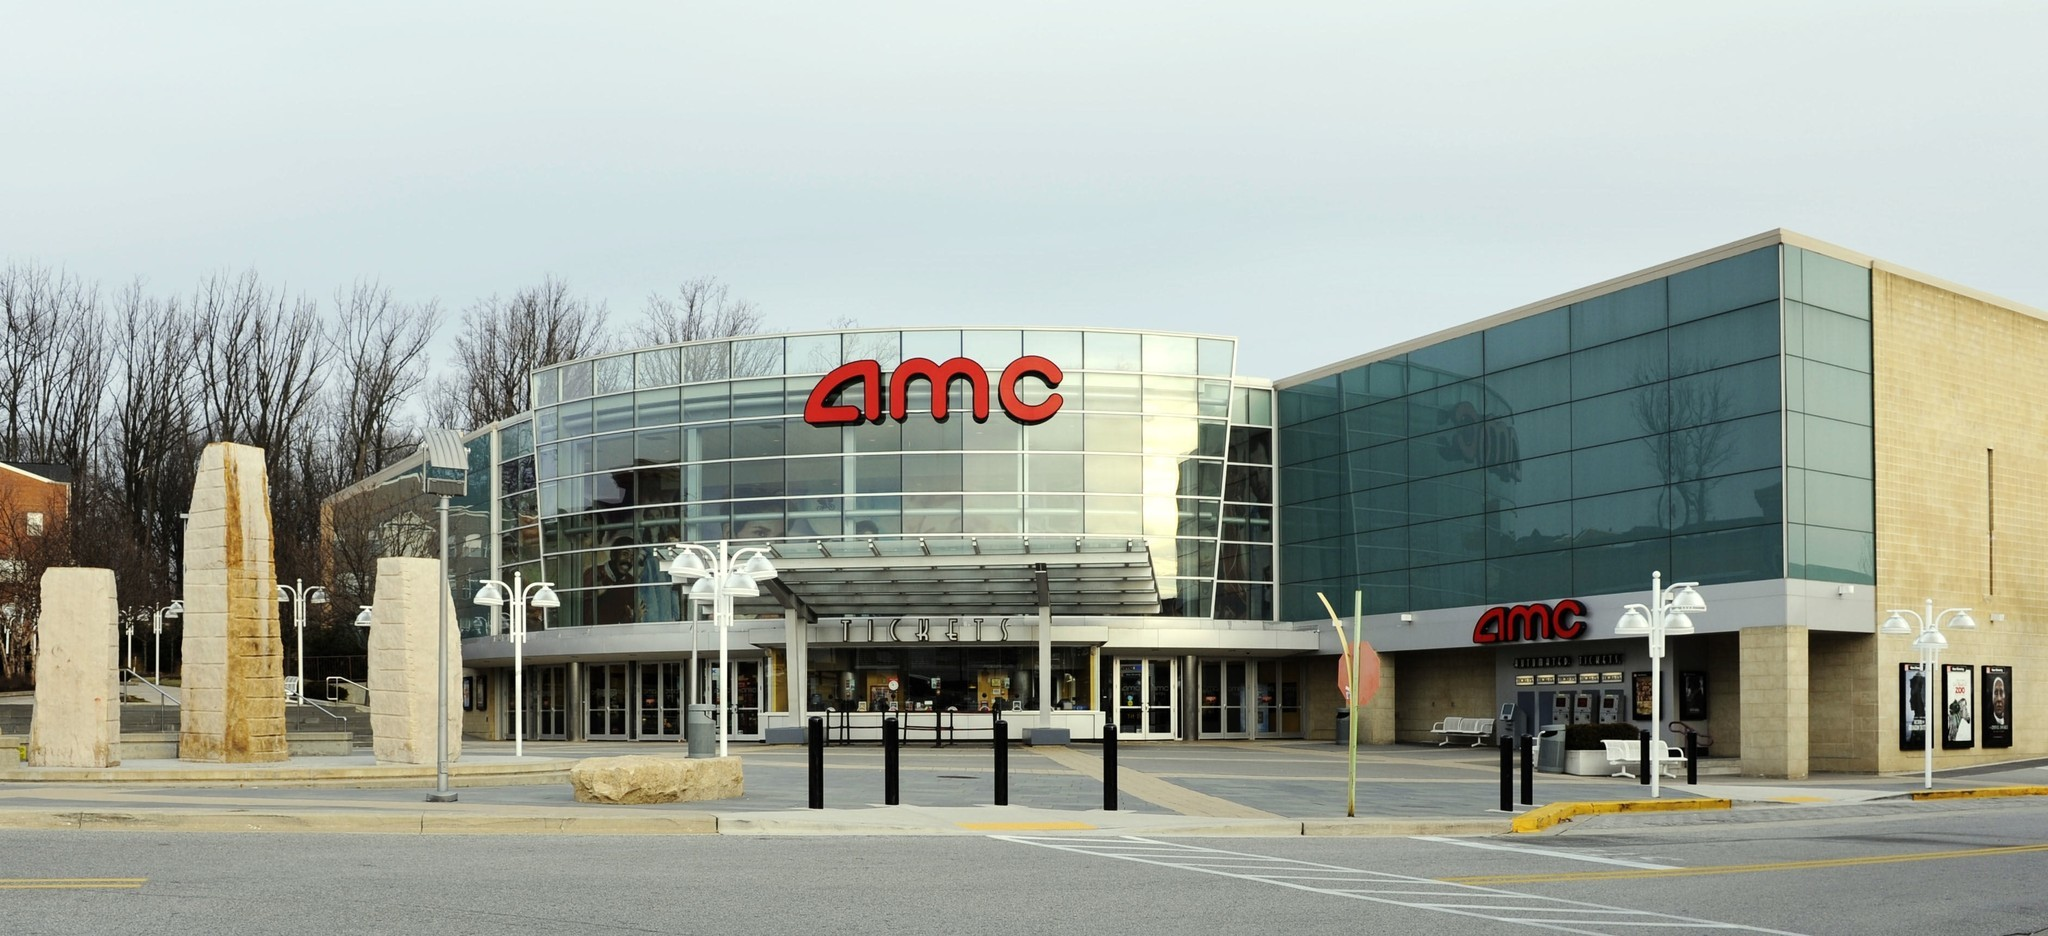 Movie Showtimes and Movie Tickets for AMC Columbia 14 located at Little Patuxent Parkway, Columbia, MD.